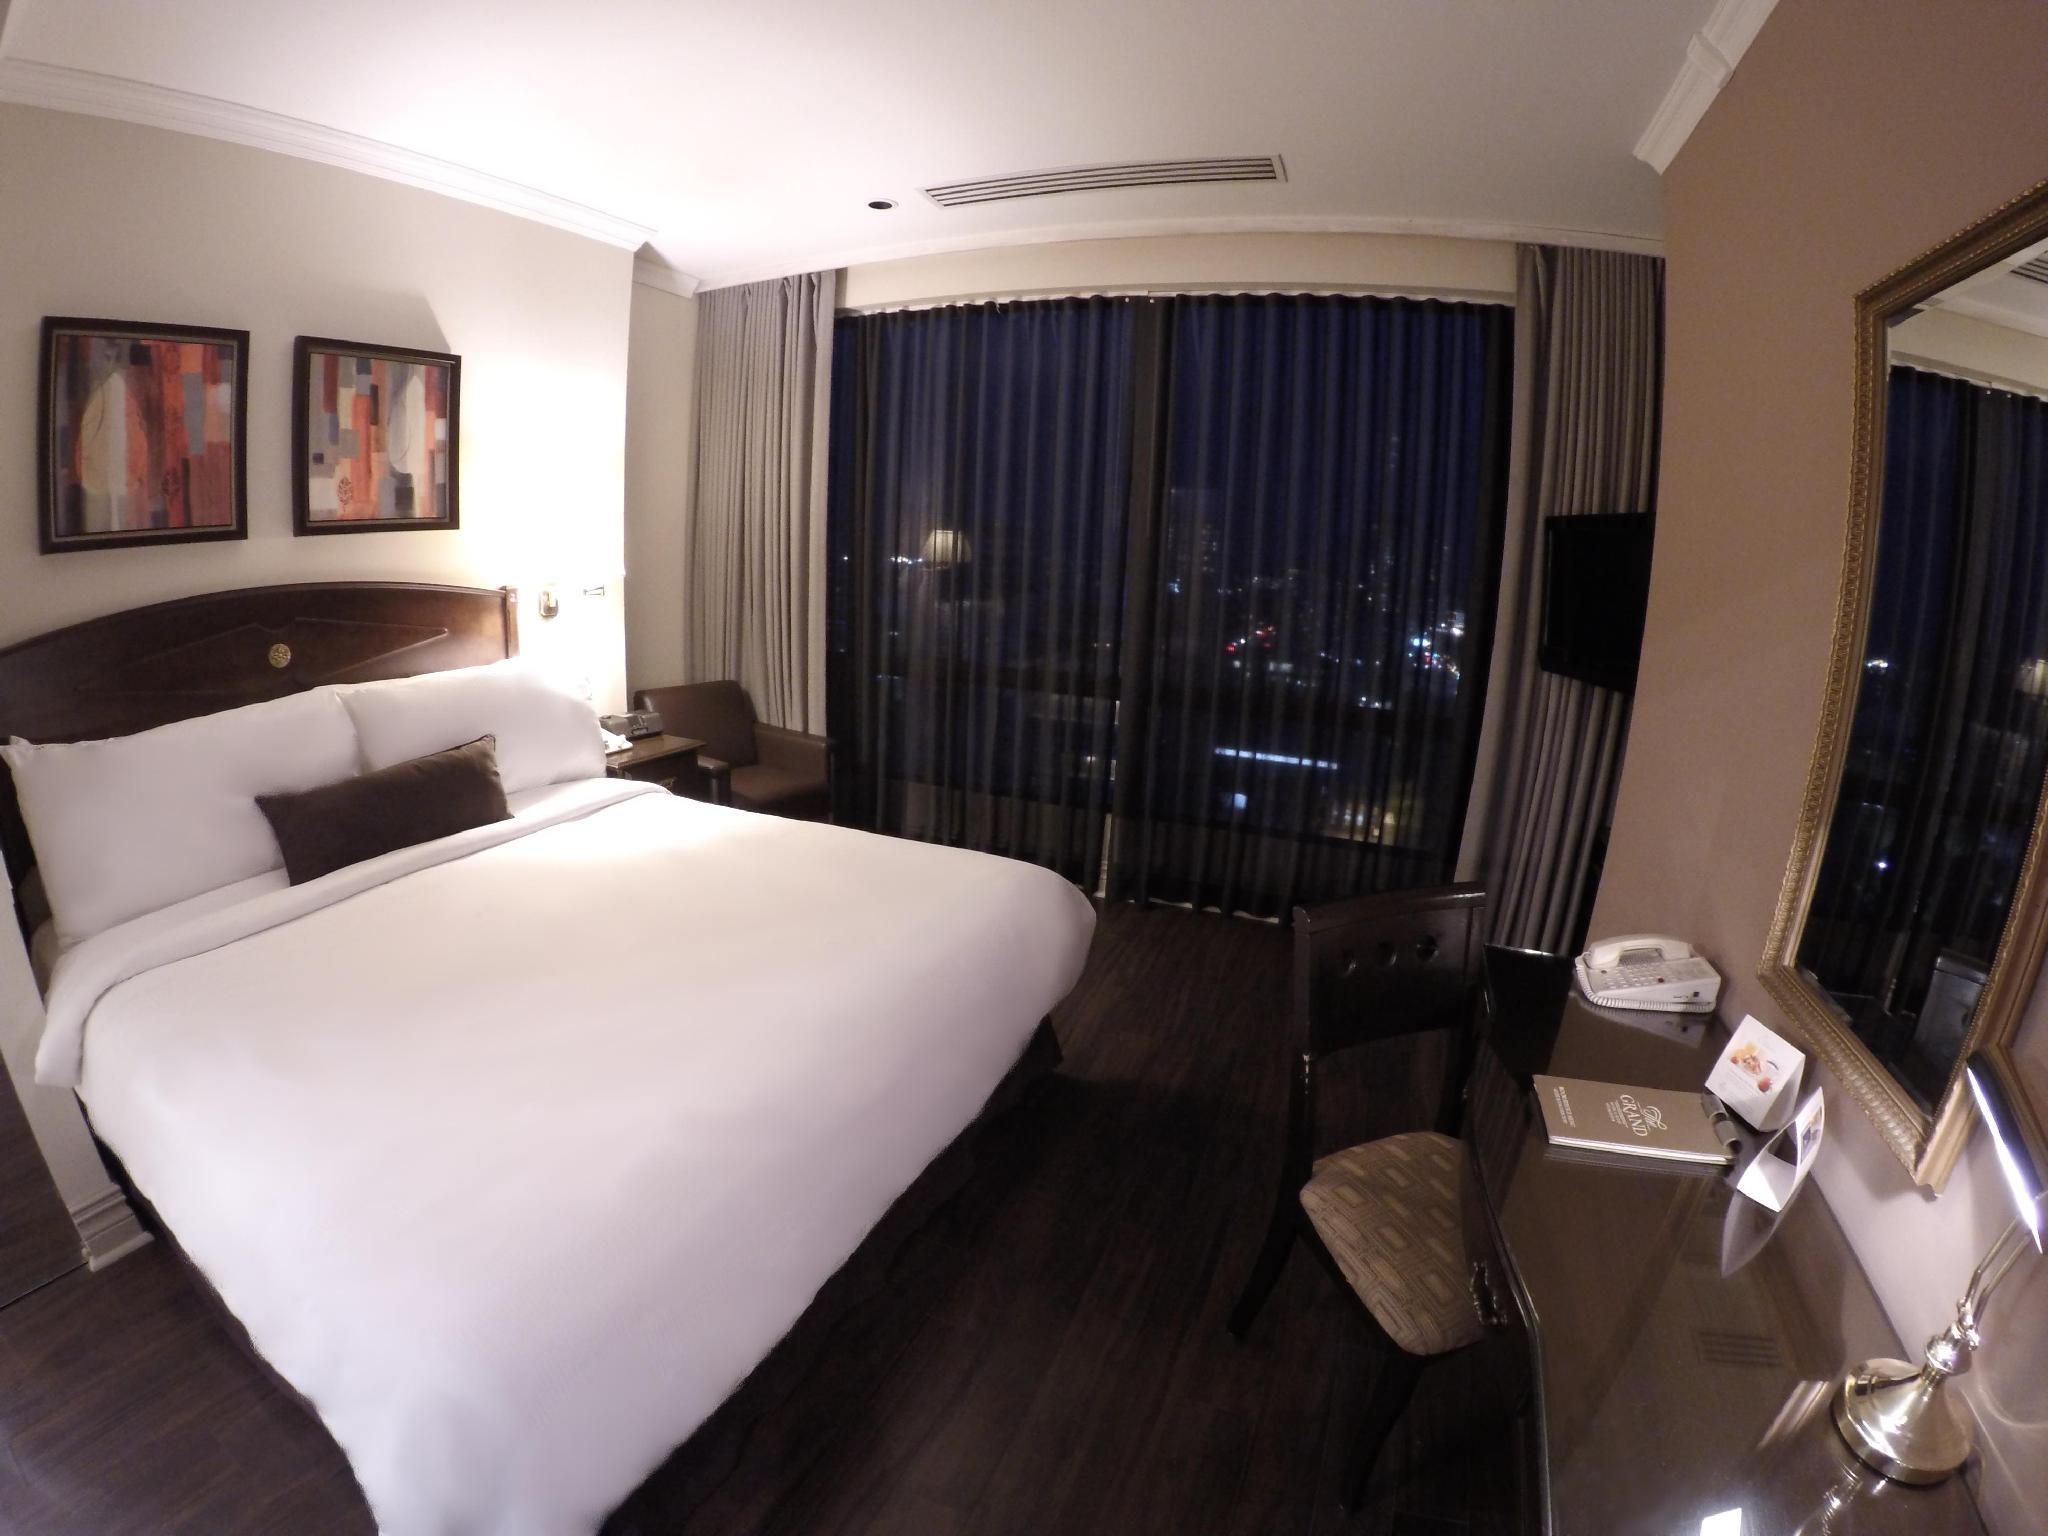 Grand Hotel Suites In Toronto On Room Deals Photos Reviews